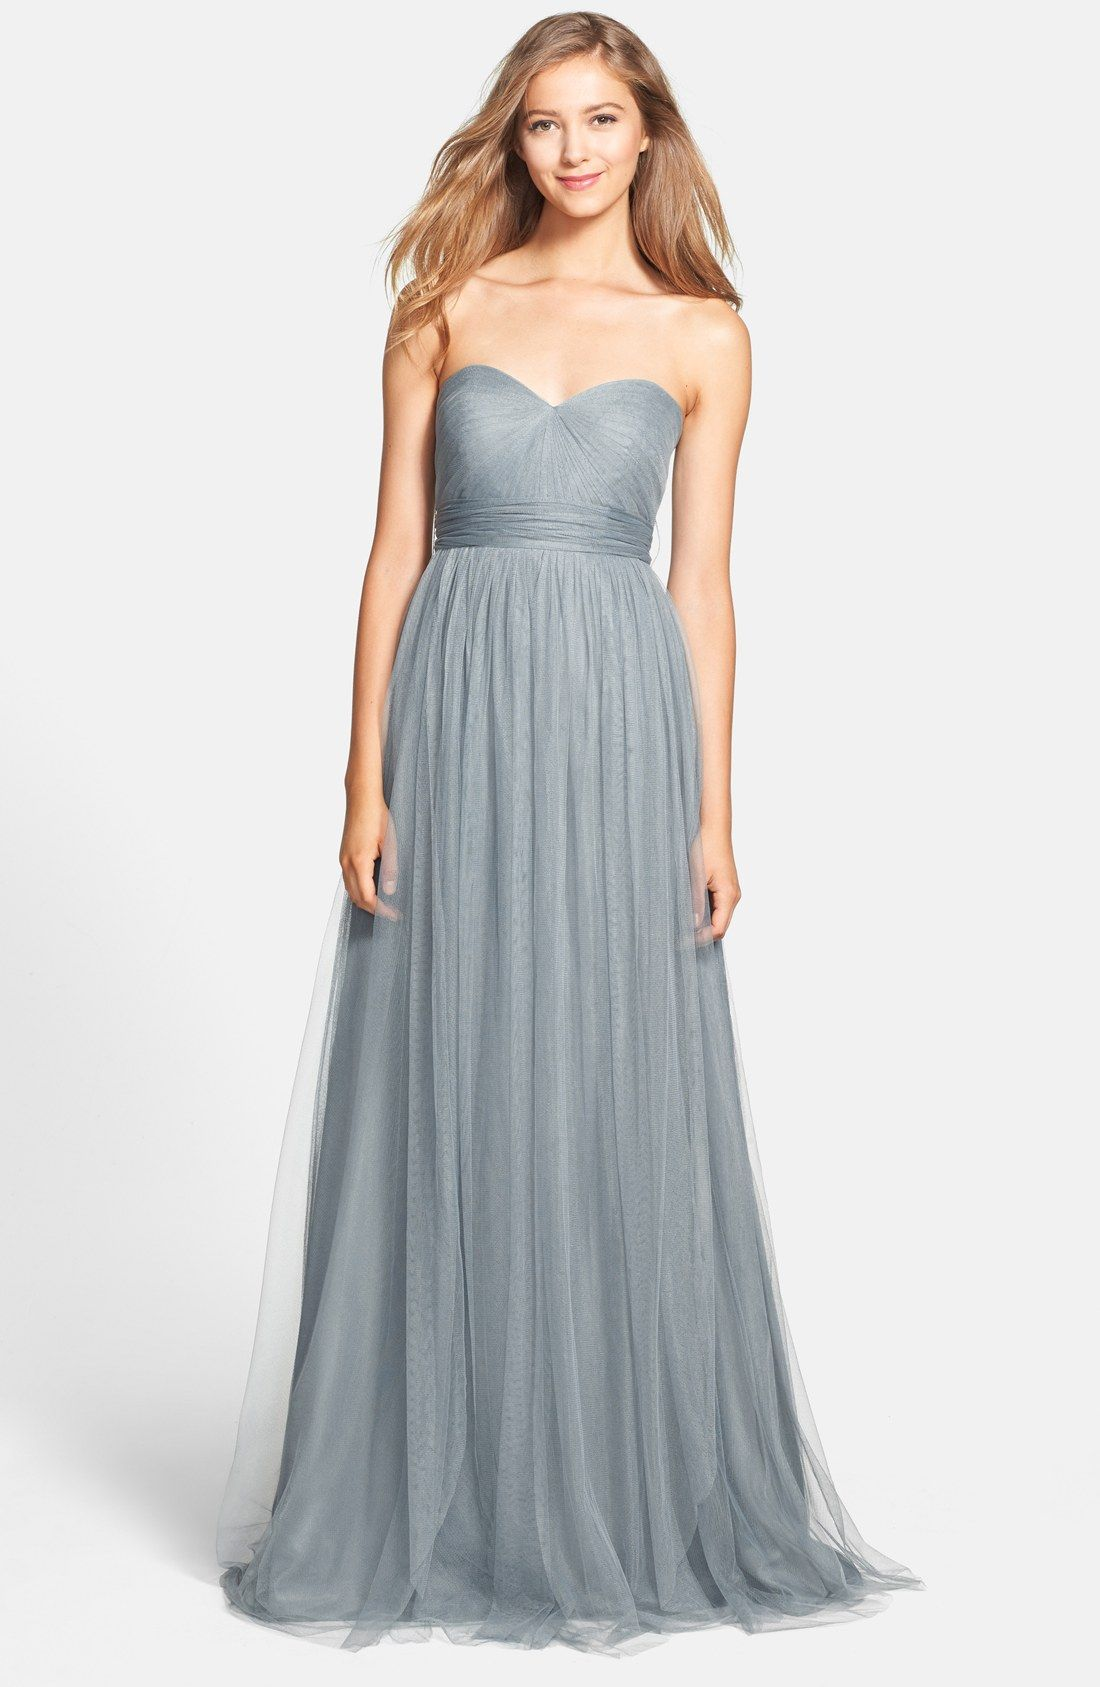 Light Blue Bridesmaid Dresses | Column dress, Wedding and Weddings